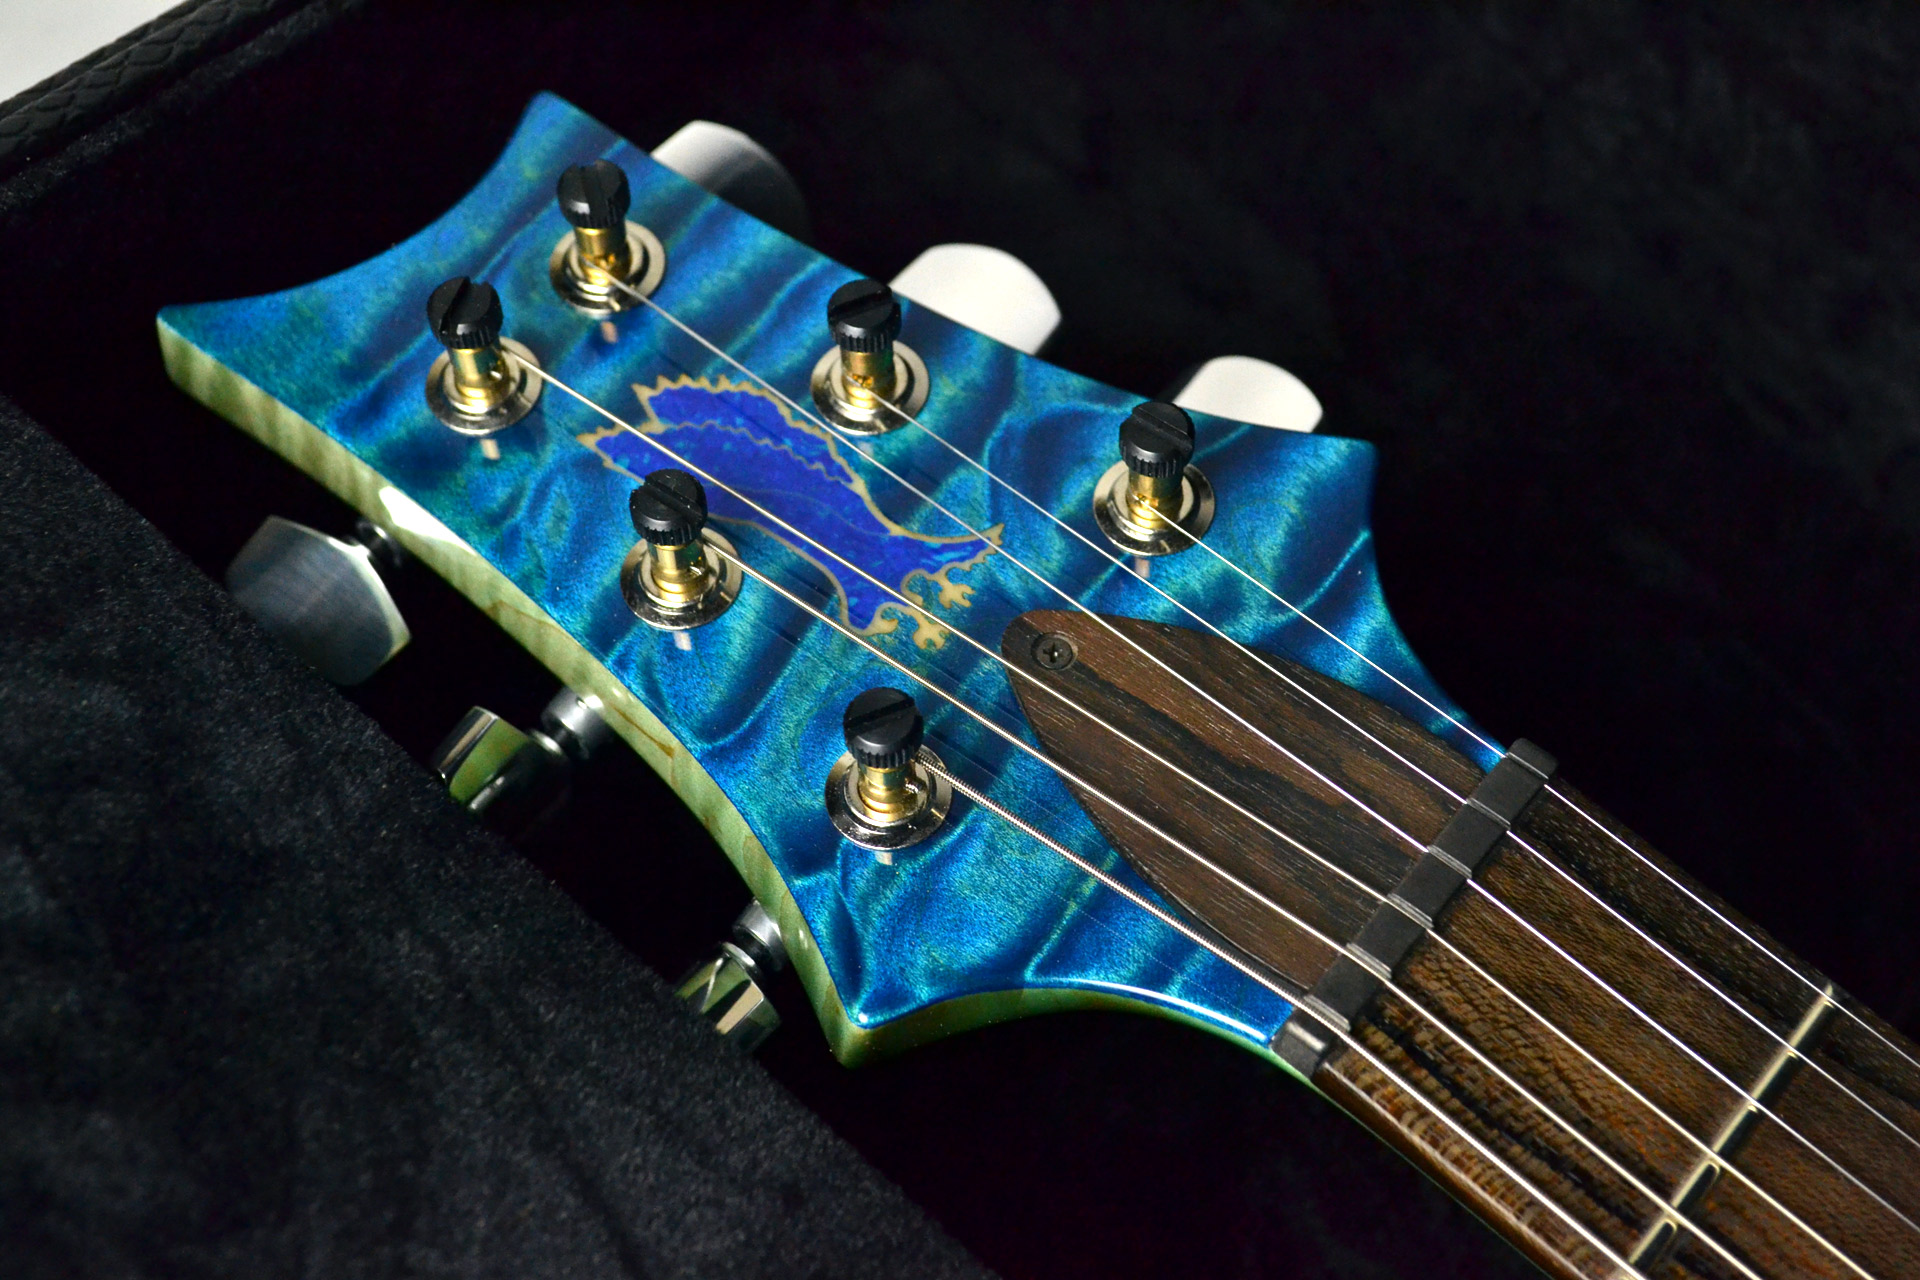 Private Stock #7659 Custom24 3-piece Top Aquamarine&Blue Fade,Luminlay Purflingのヘッド画像